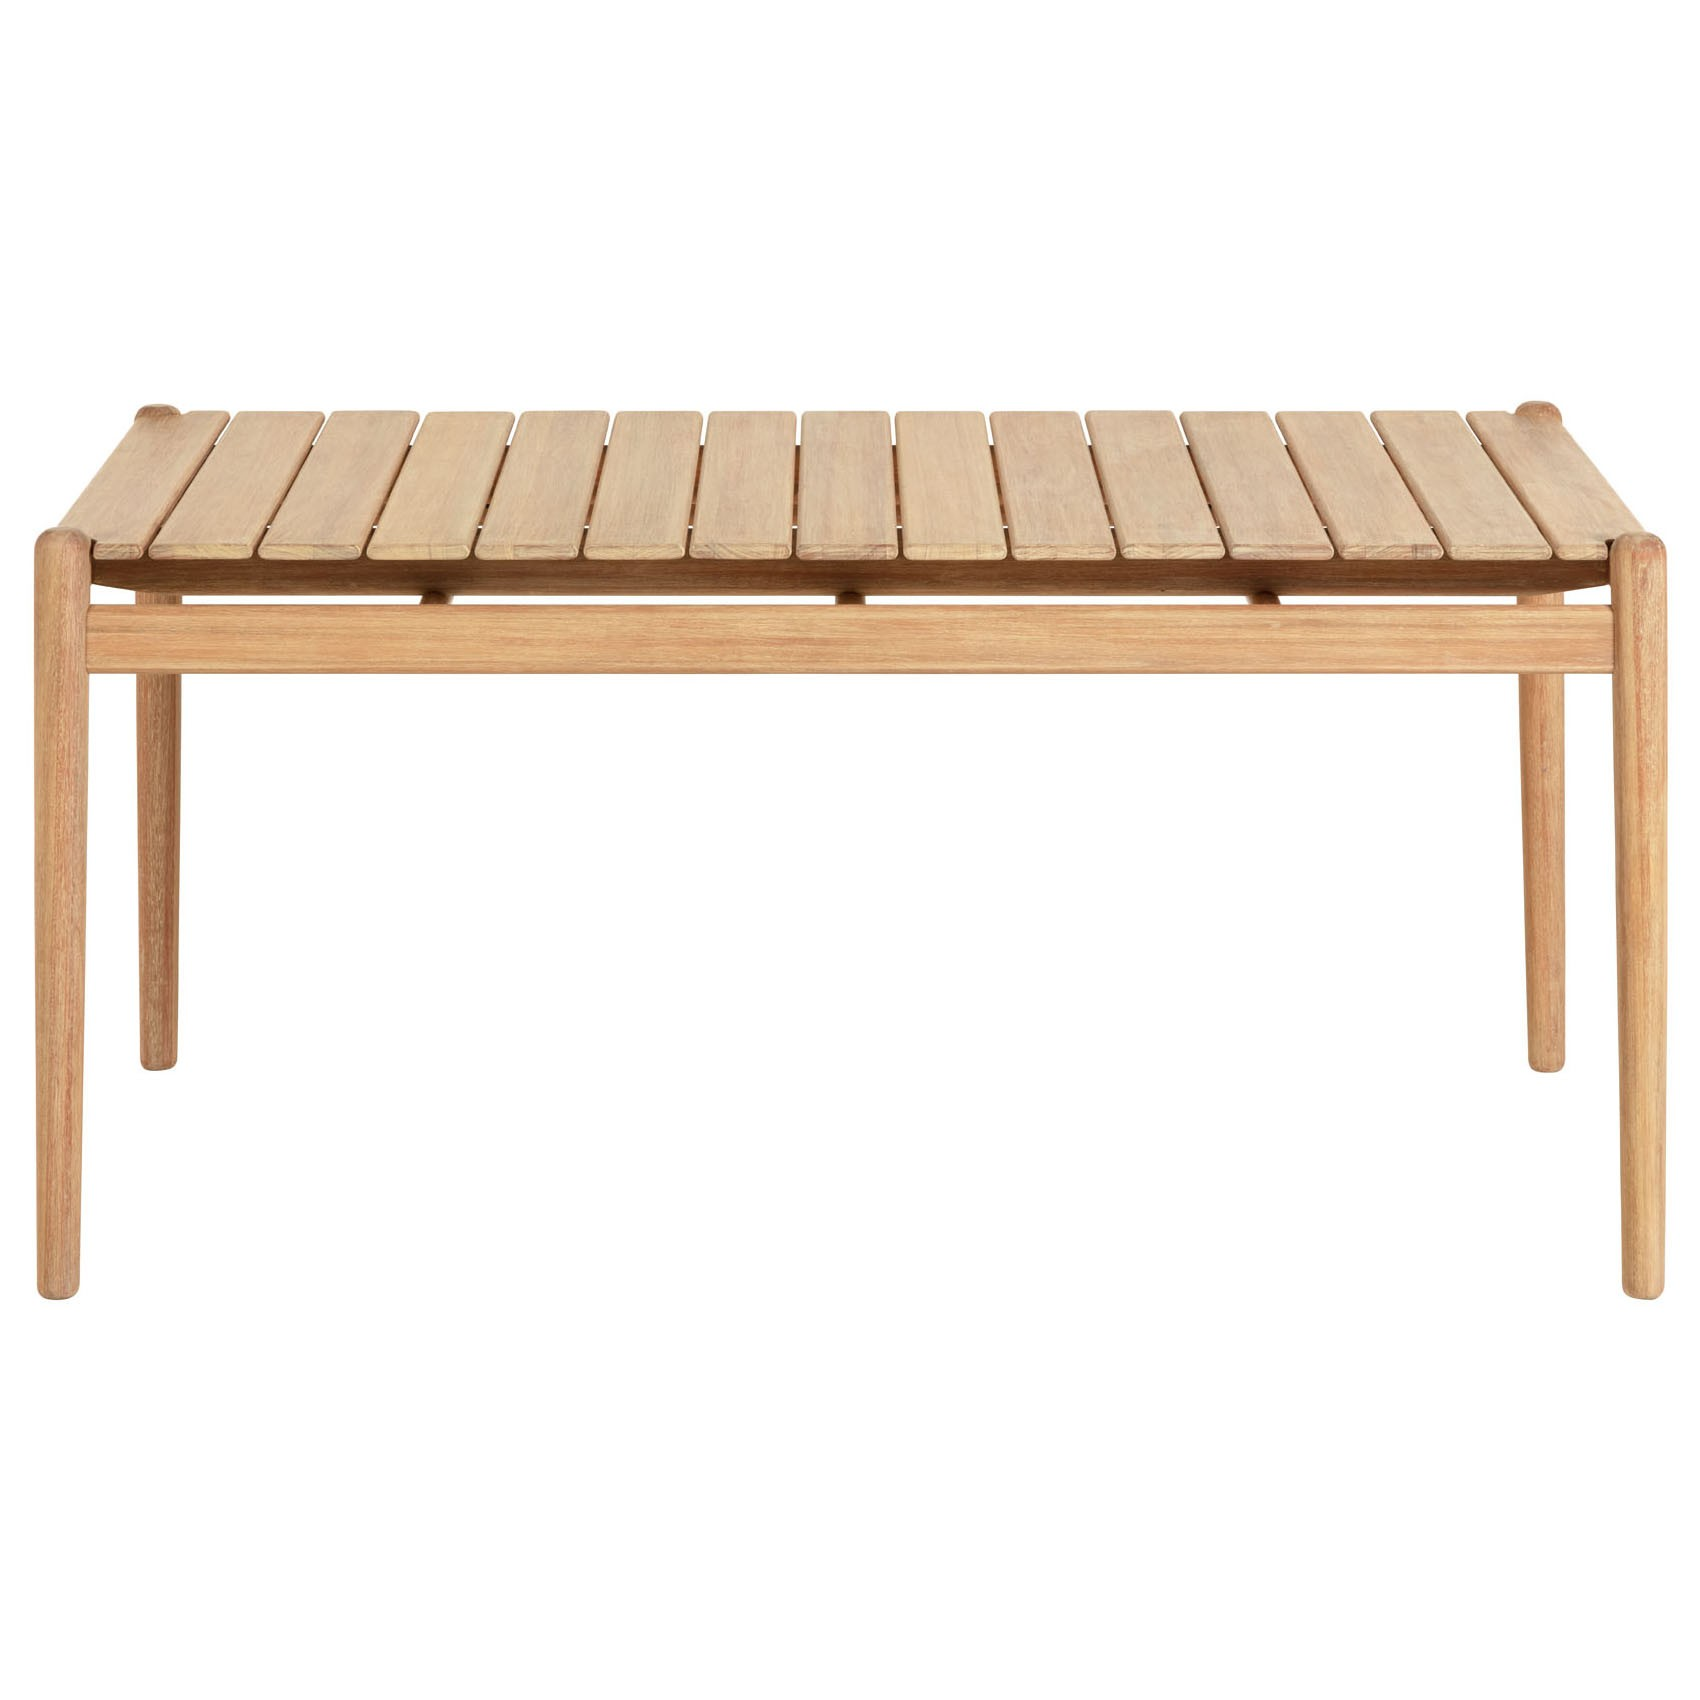 Lomond Eucalyptus Timber Alfresco Dining Table, 160cm